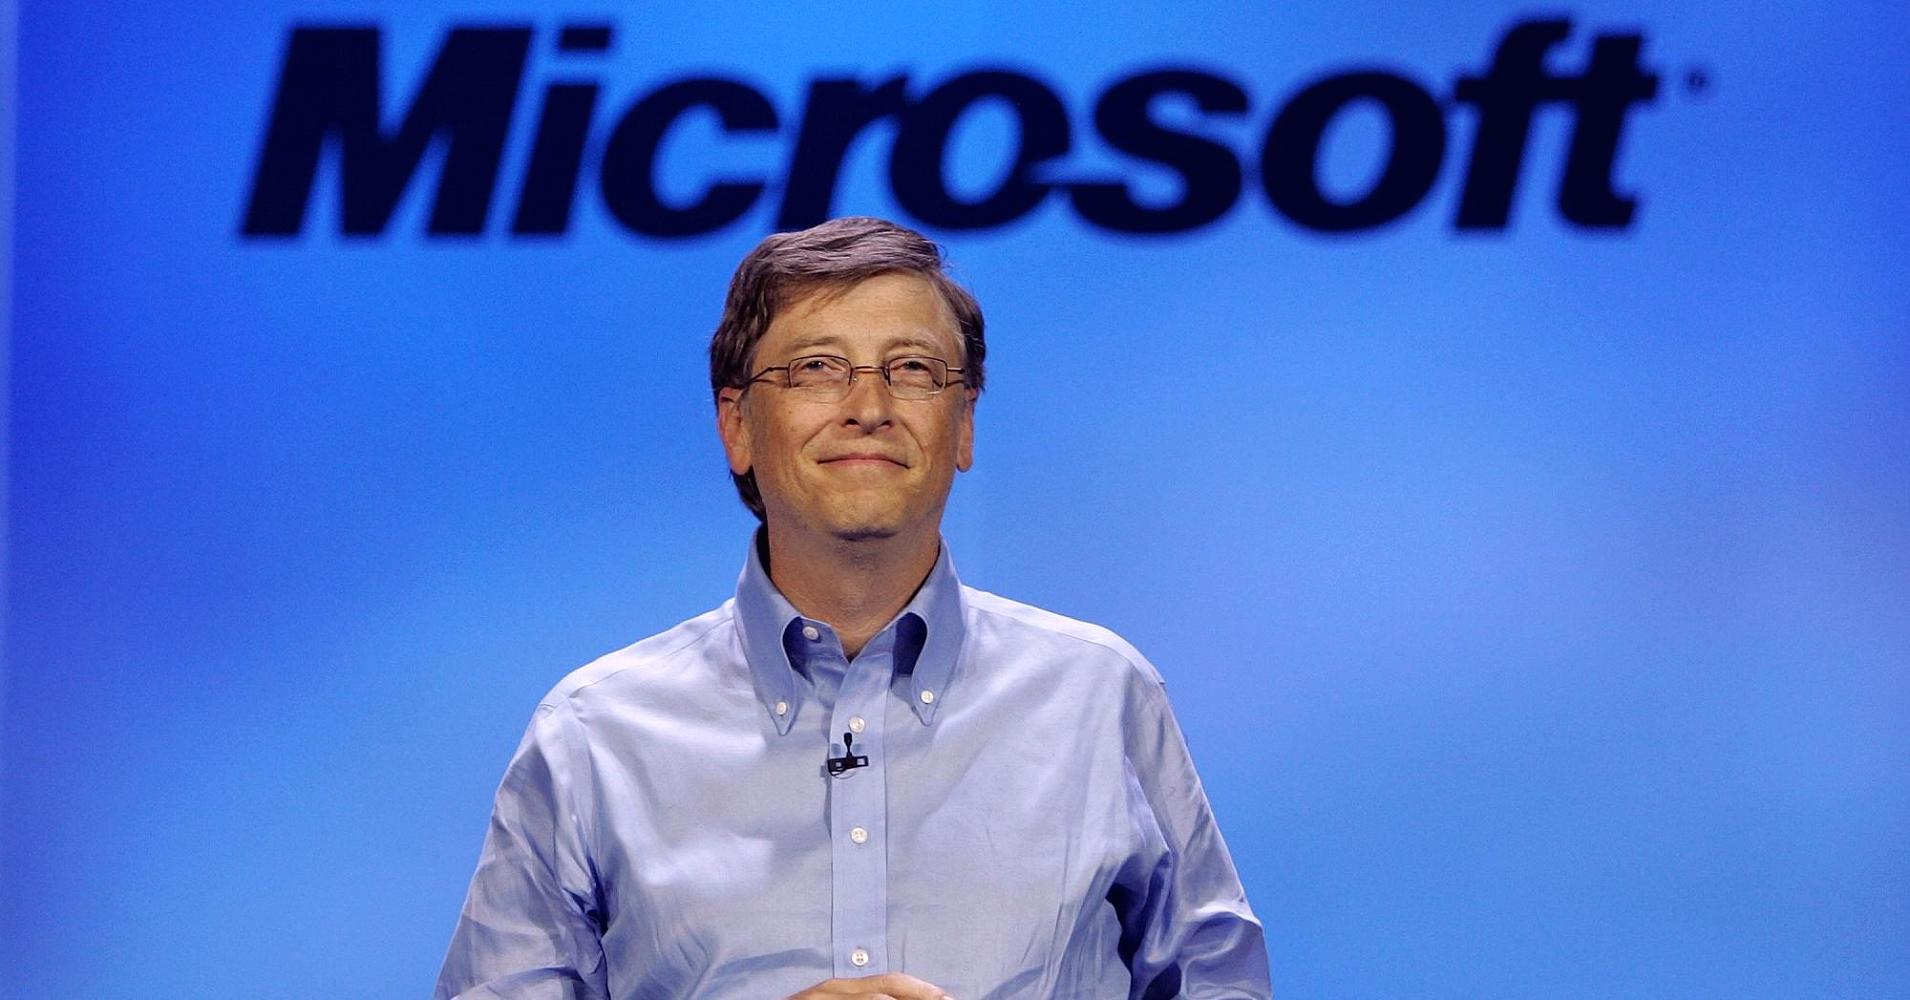 Bill Gates, founder of the Microsoft Corporation